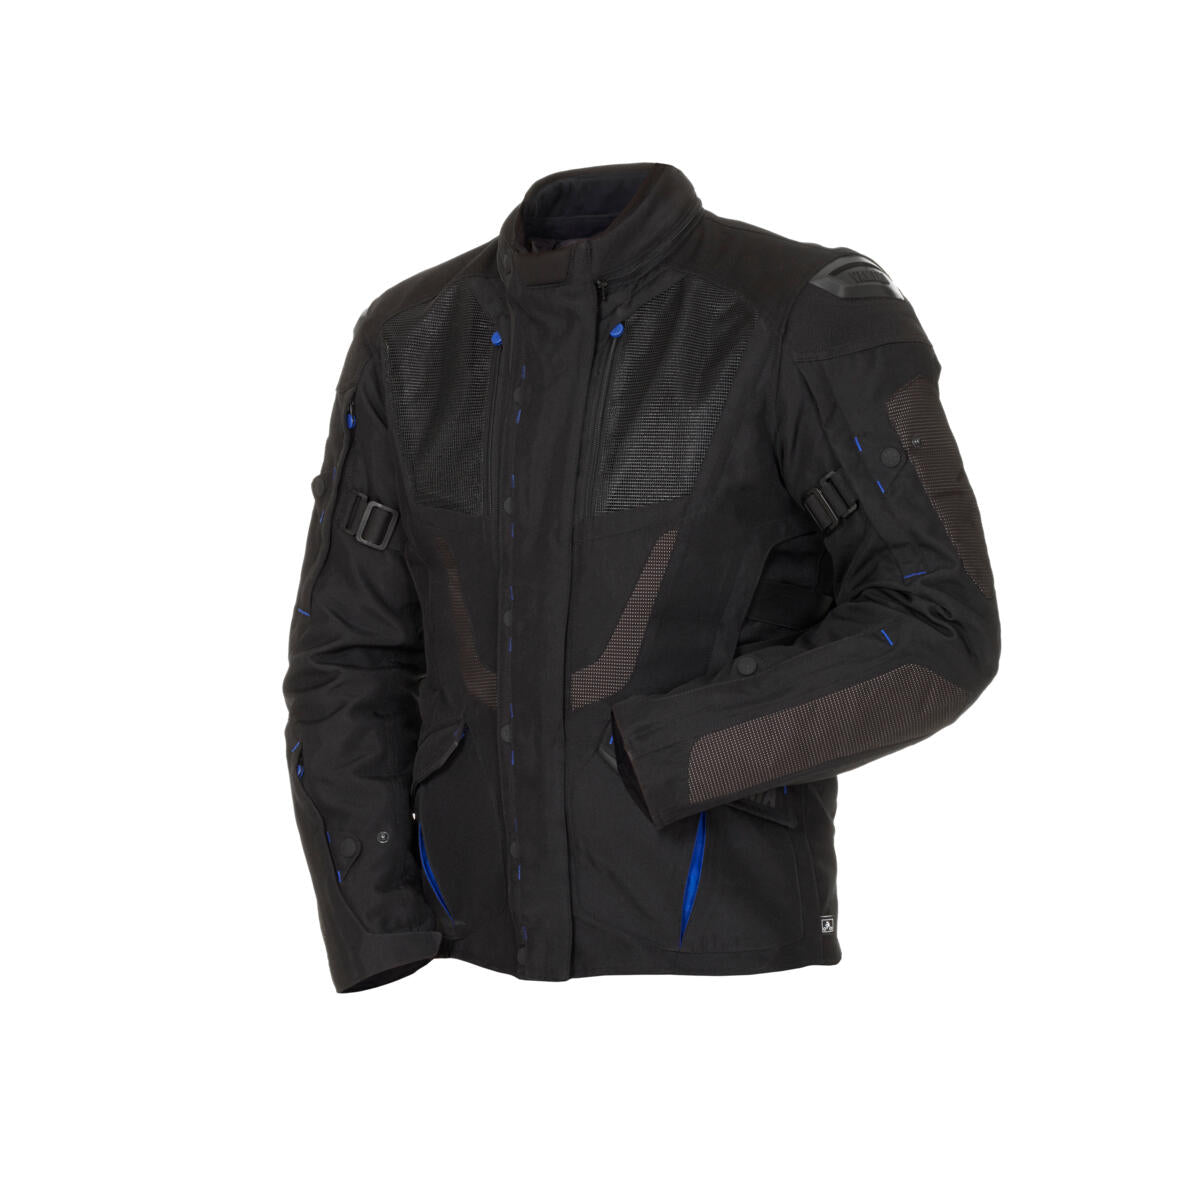 Adventure Men's Jacket